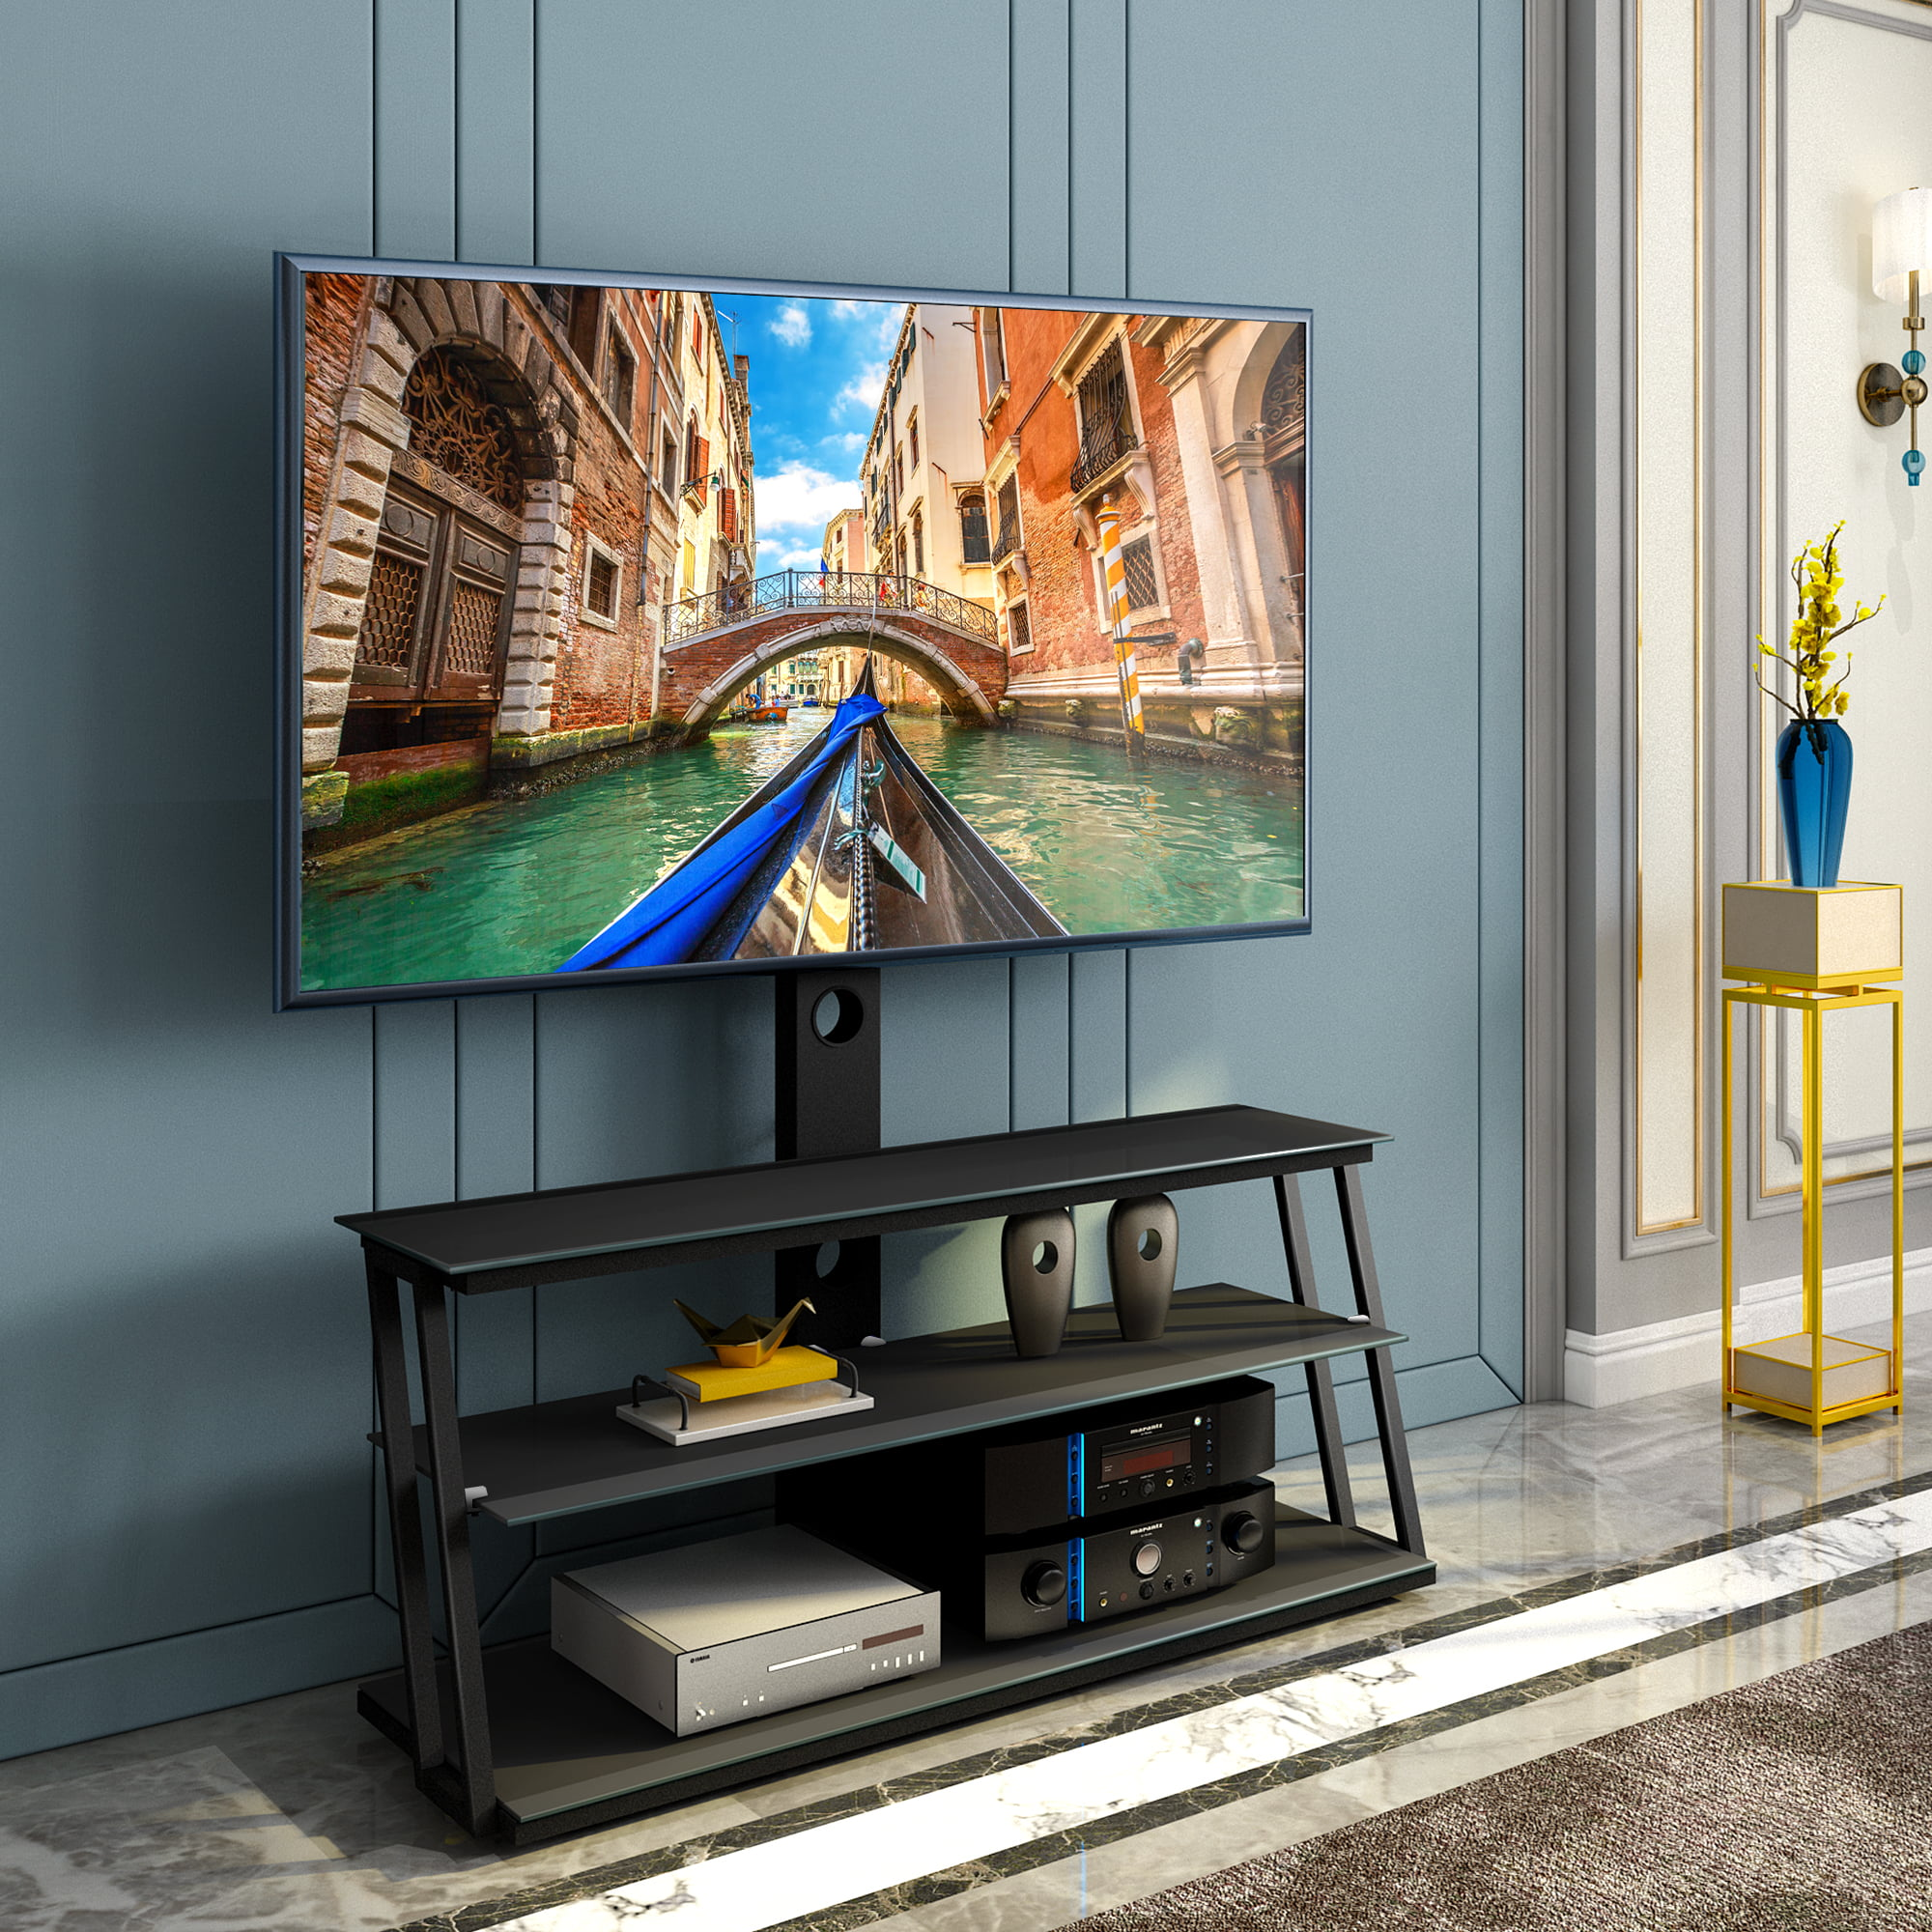 Universal Swivel Floor TV Stand with Shelves for 32-65 inch Flat Screen TVs